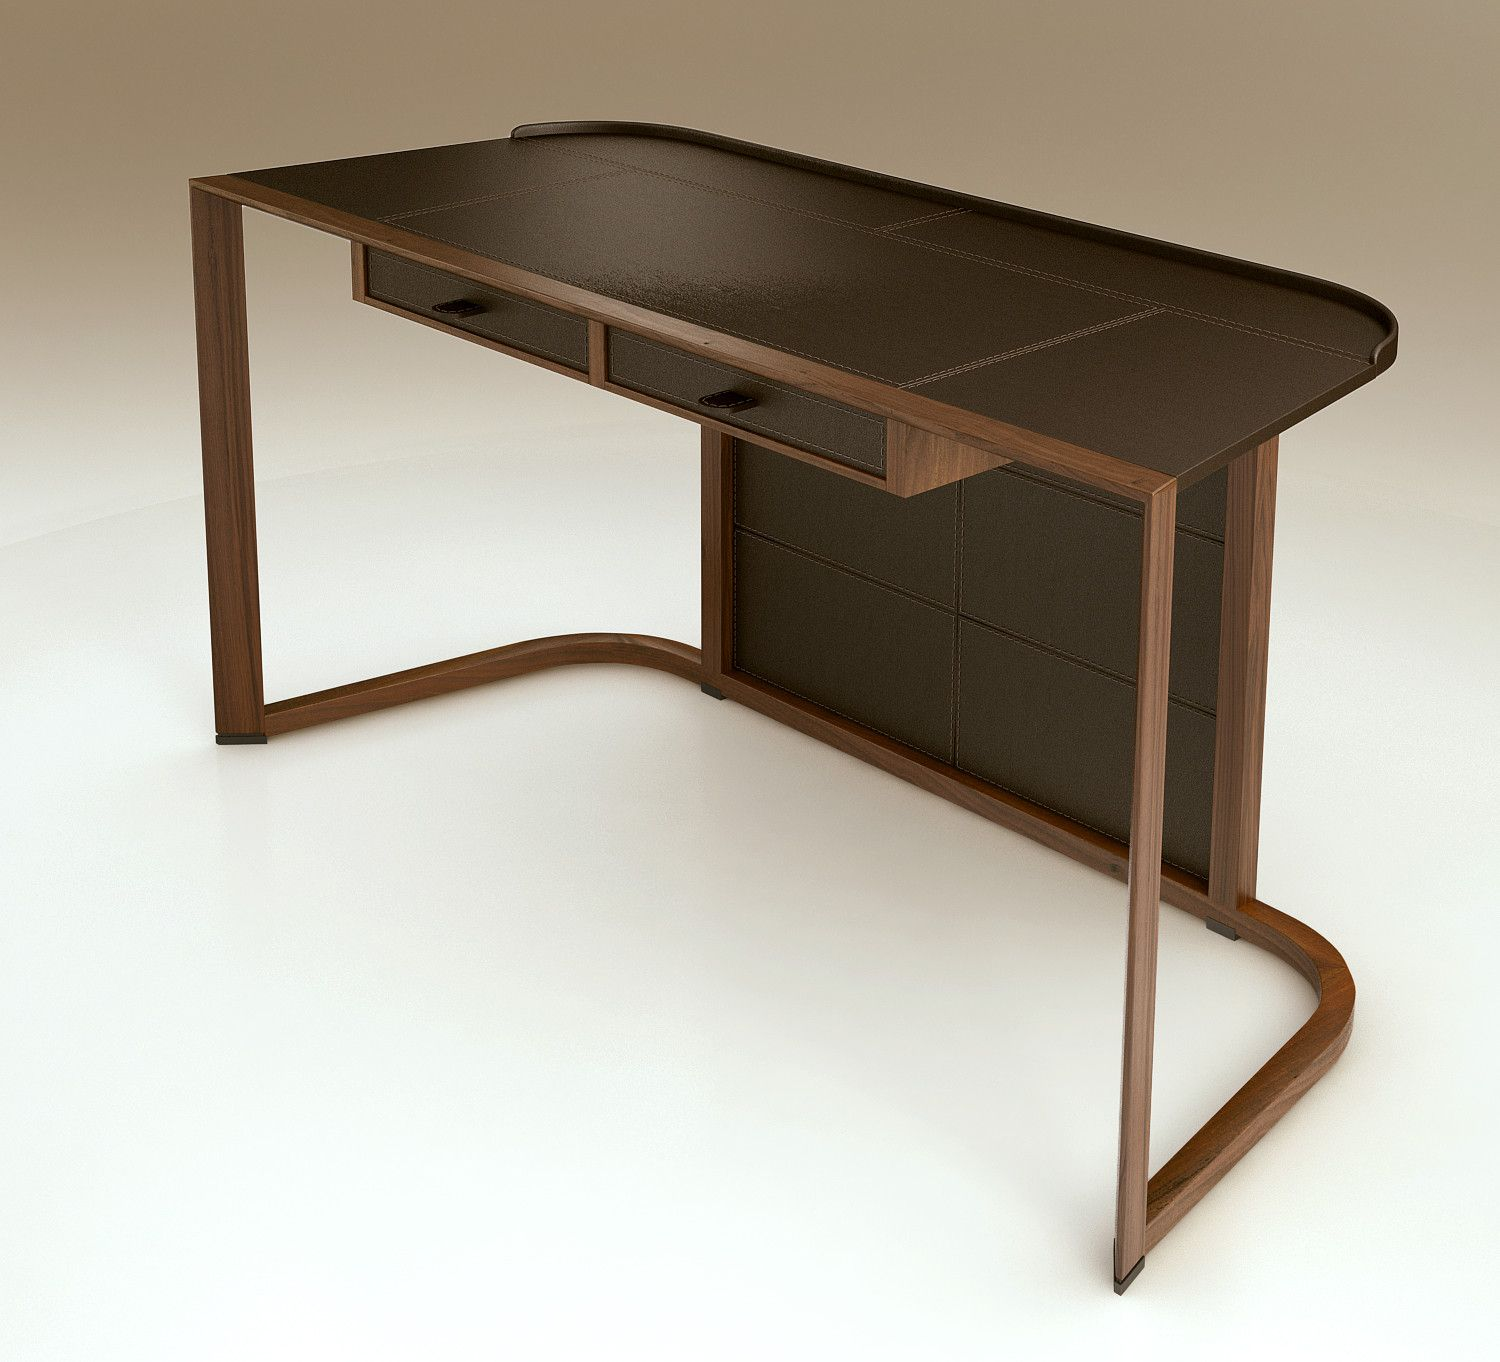 3ds max desk Desk furniture, Table furniture